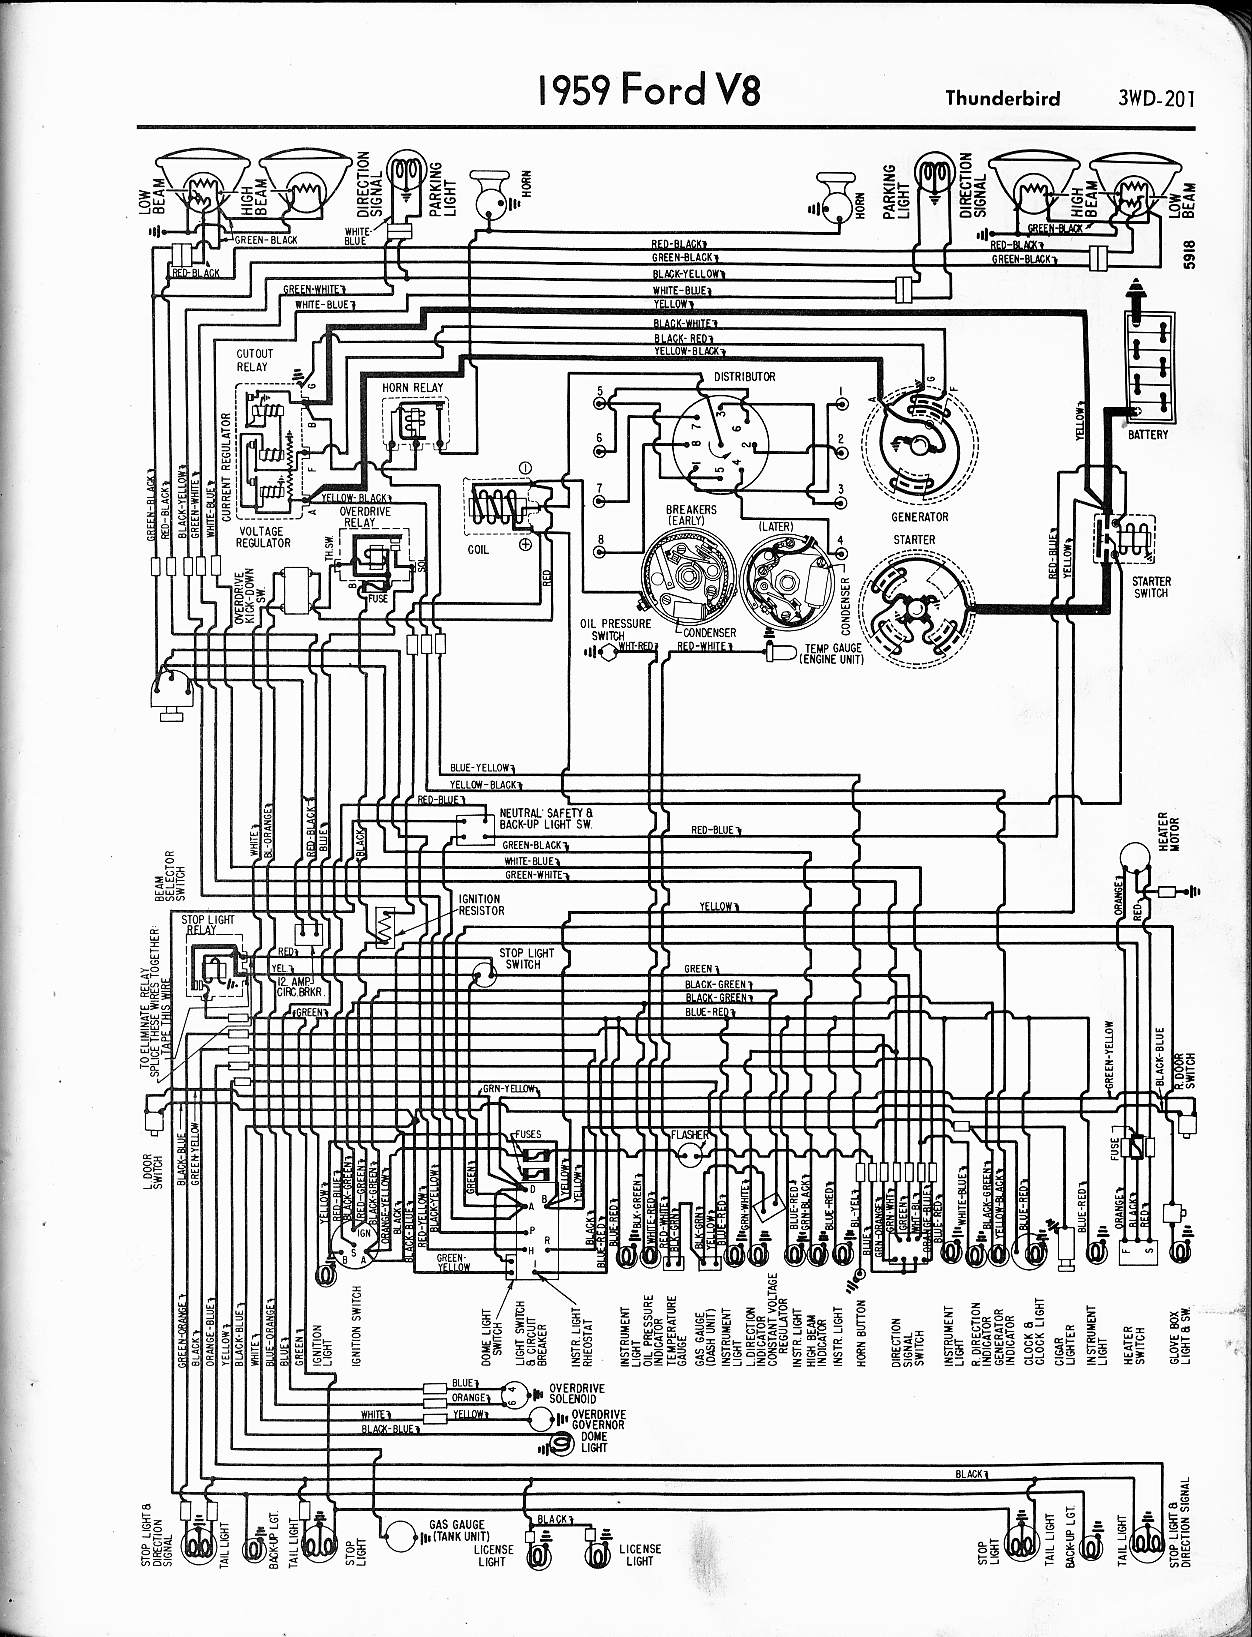 57 65 Ford Wiring Diagrams Basic Diagram Car 1959 Thunderbird